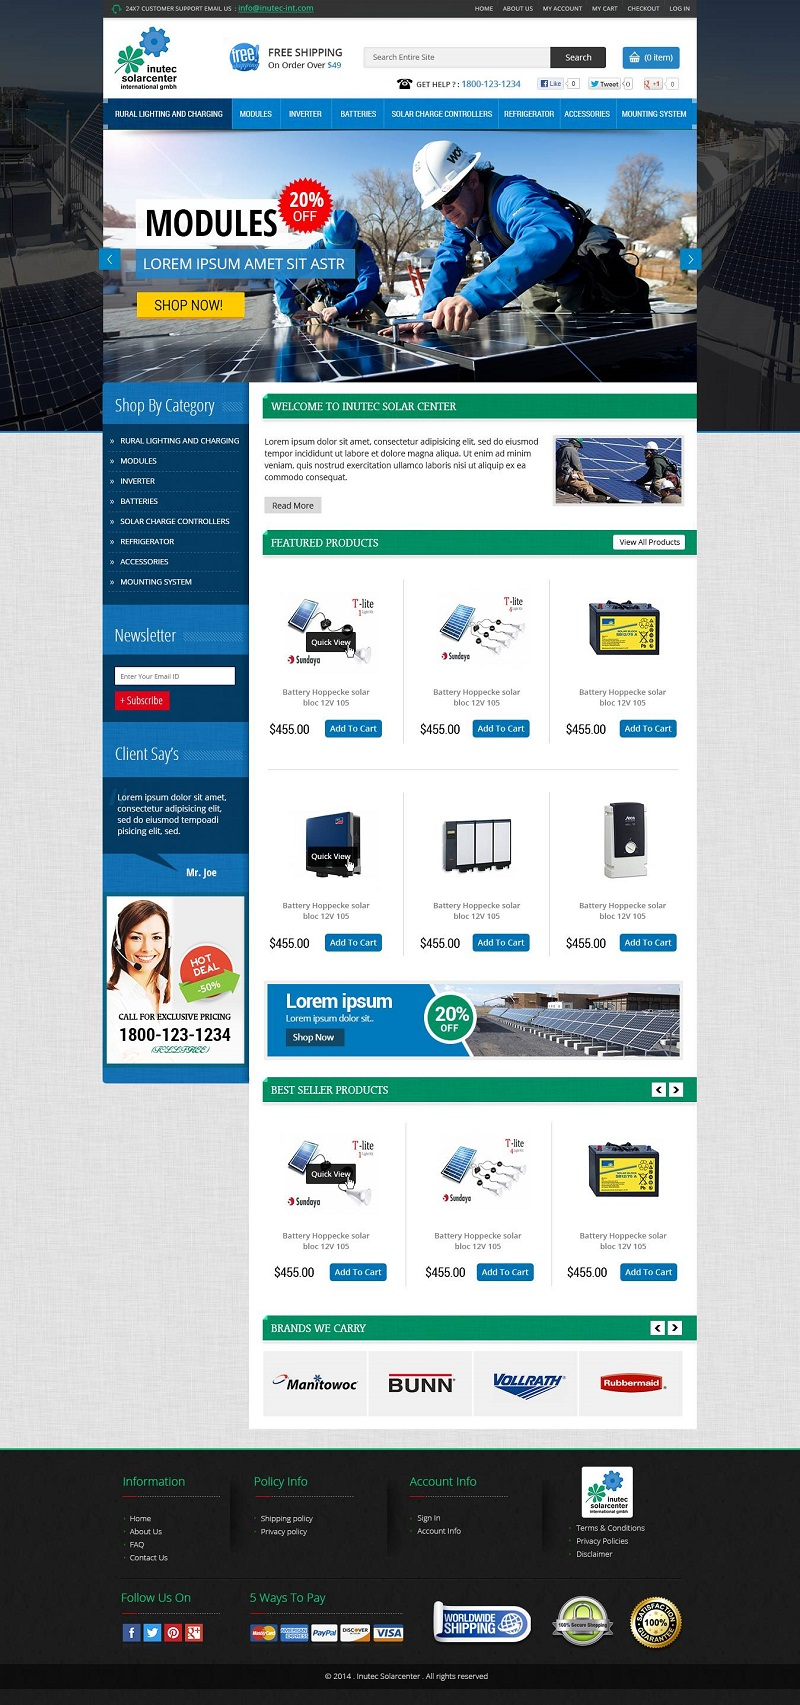 Solar parts eCommerce website design